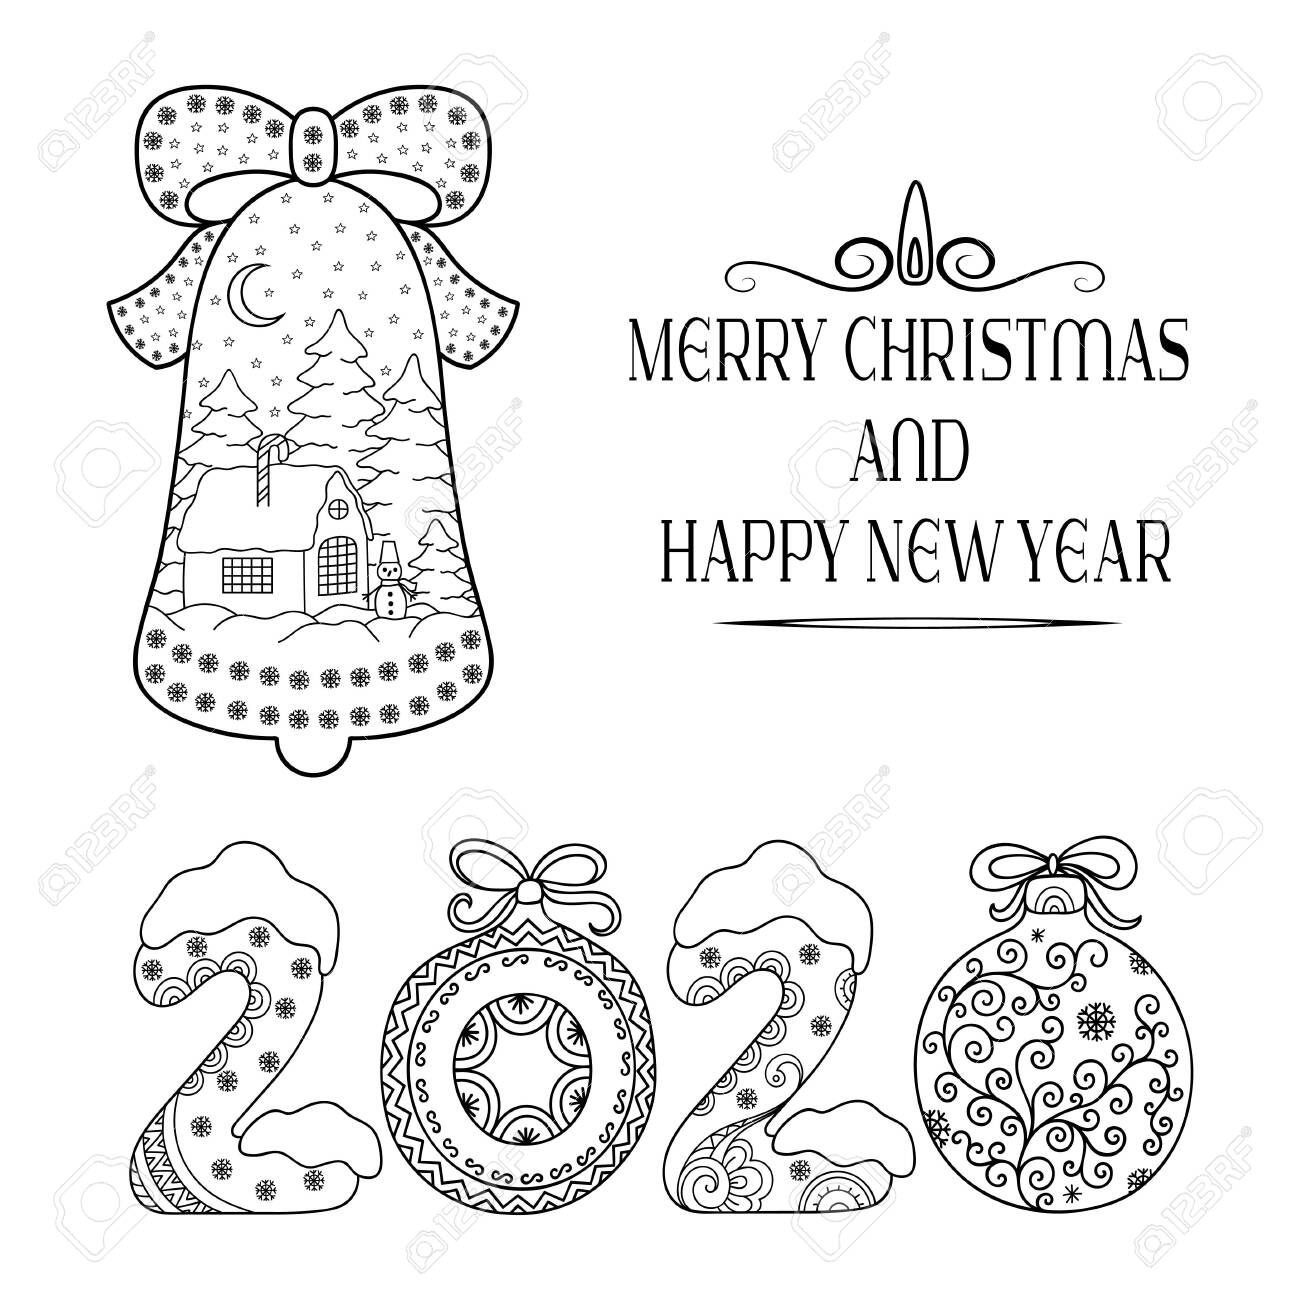 Happy New Year Coloring Pages | New year coloring pages, Printable ... | 1300x1300